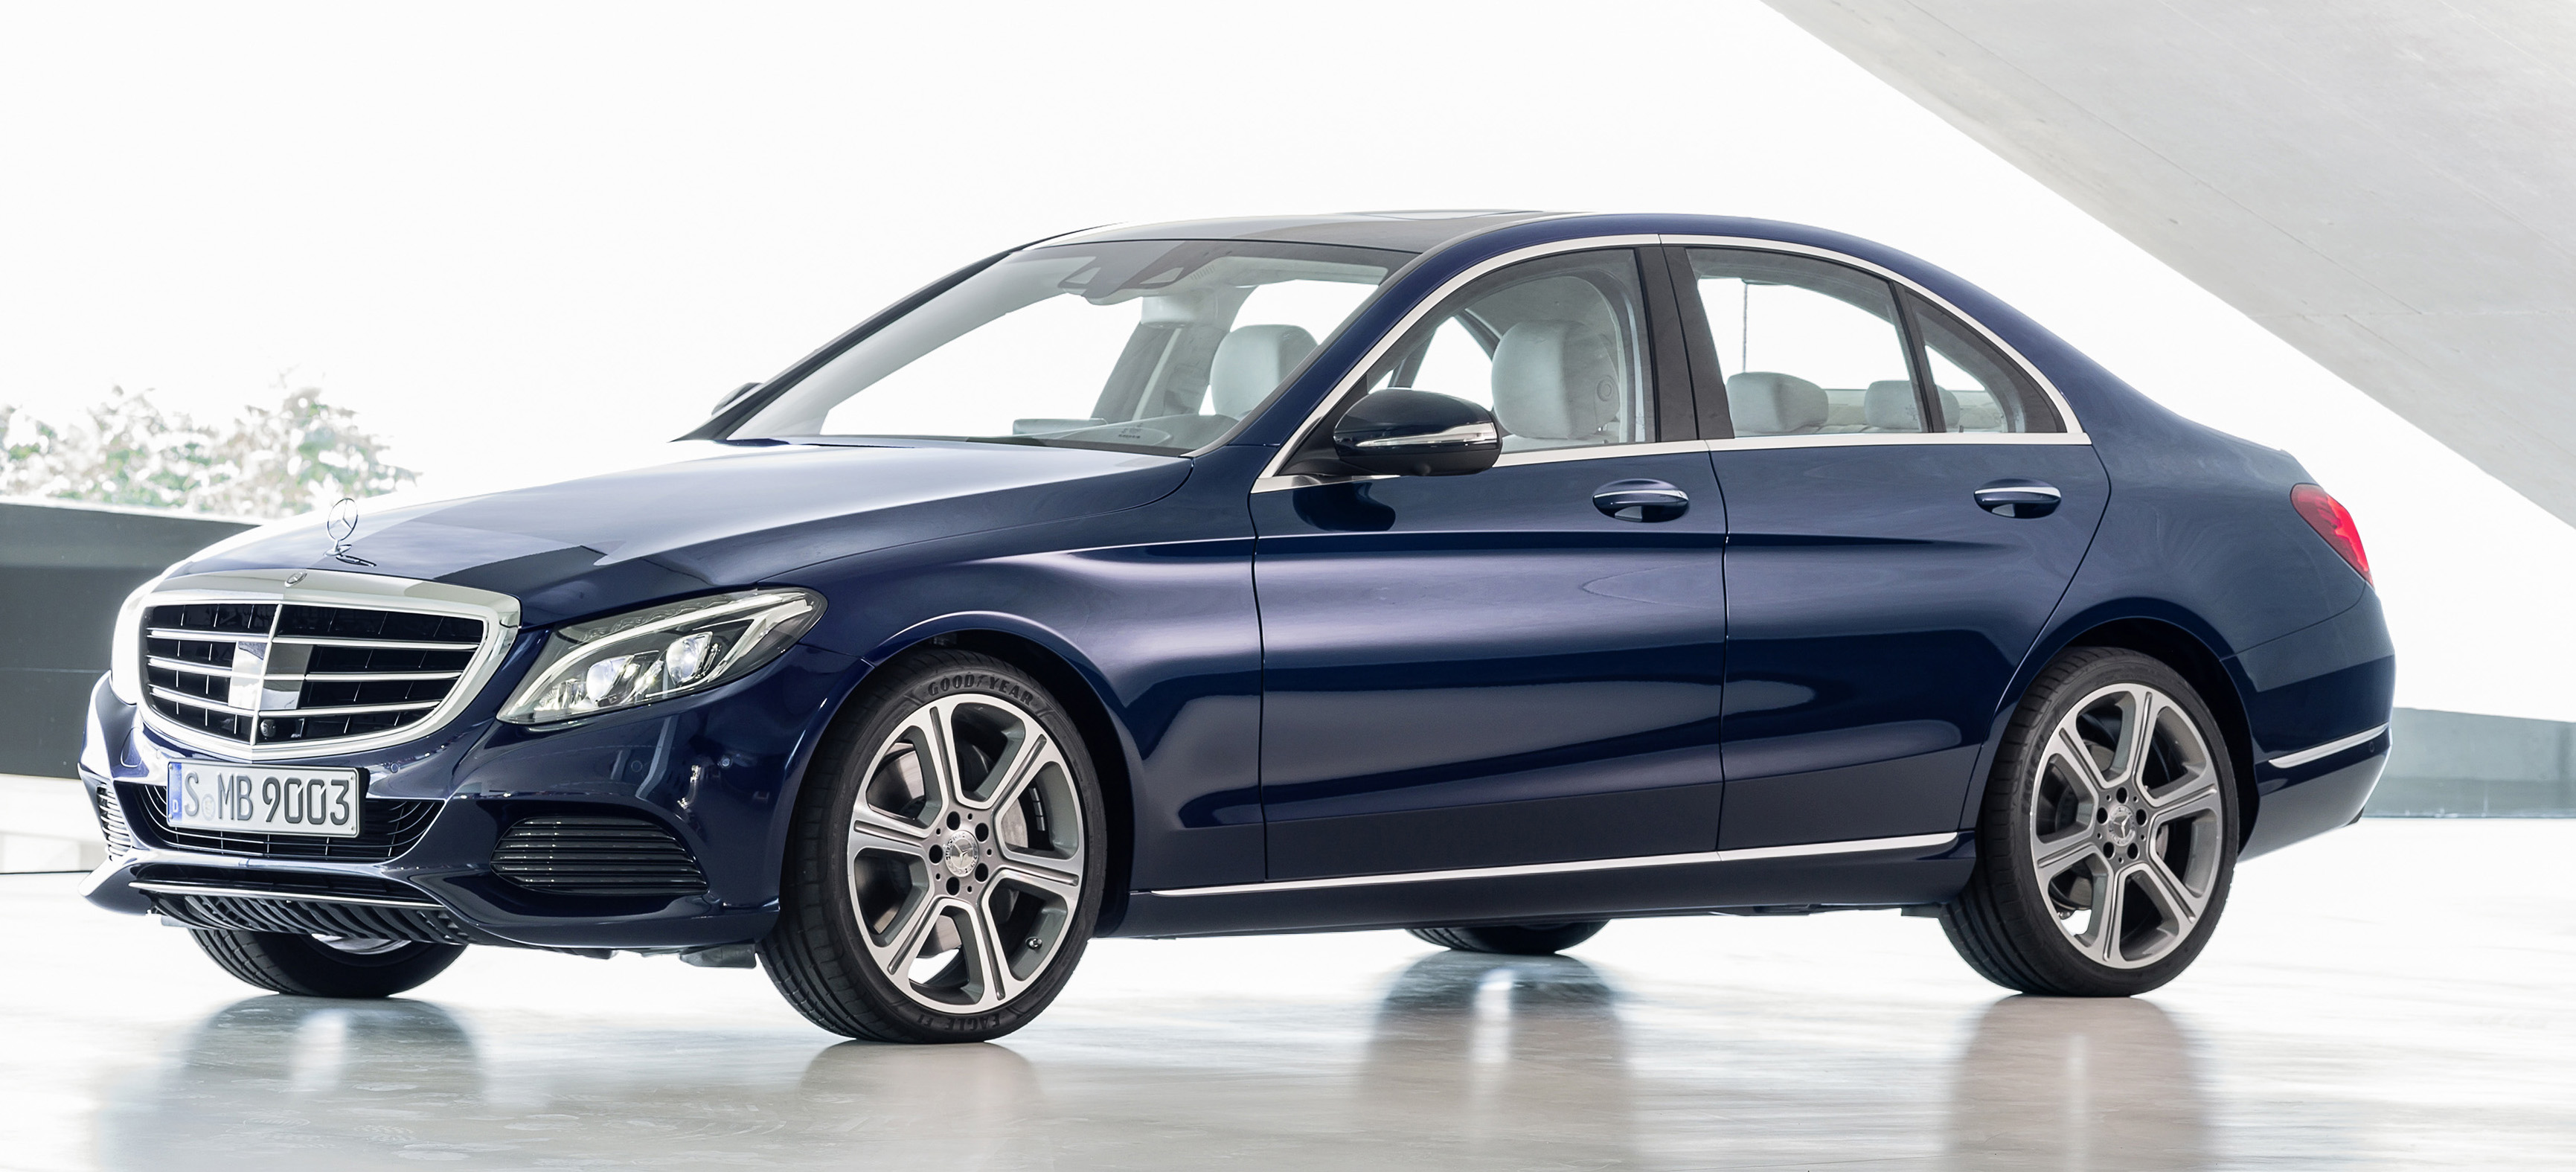 w205 mercedes benz c class first details released paul. Black Bedroom Furniture Sets. Home Design Ideas